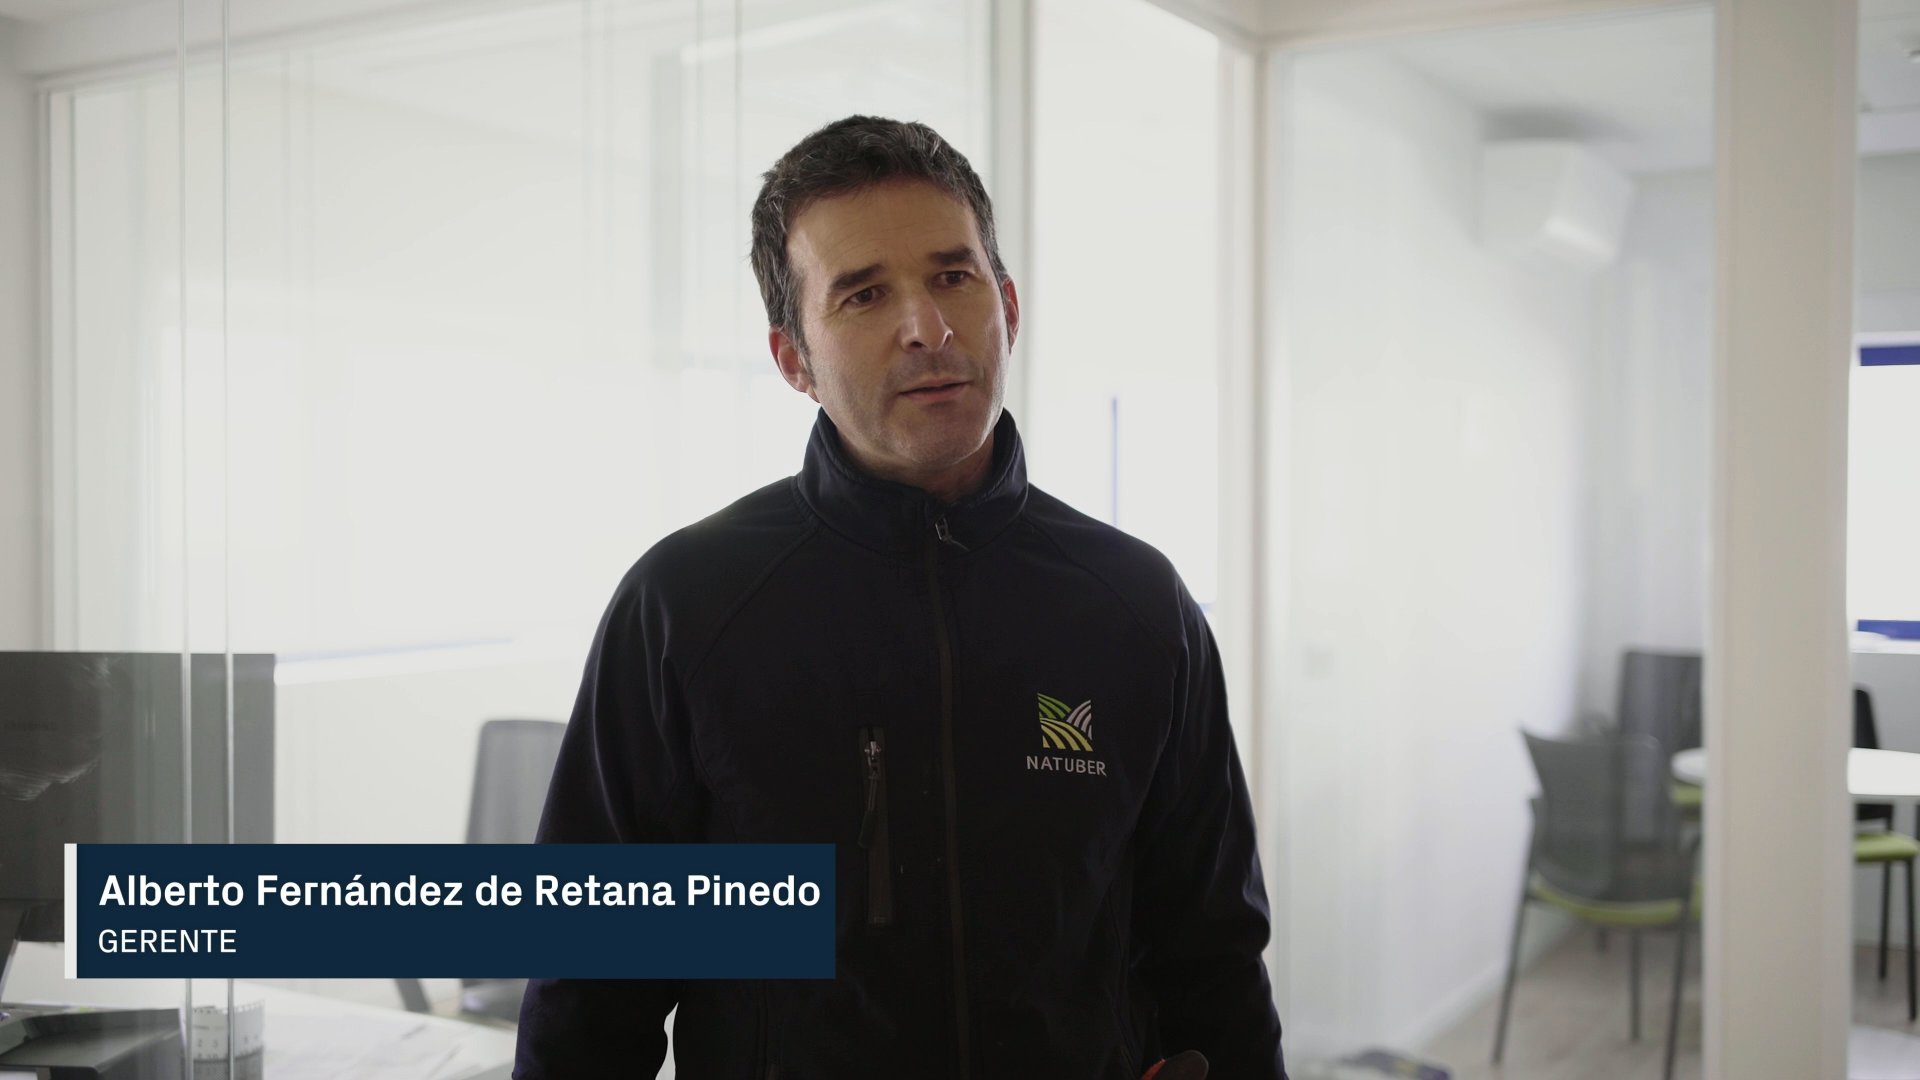 Natuber - Transformed potatoes from Álava, entrusts Grupo Xolertic with the automation of the end of line of its plant in Vitoria